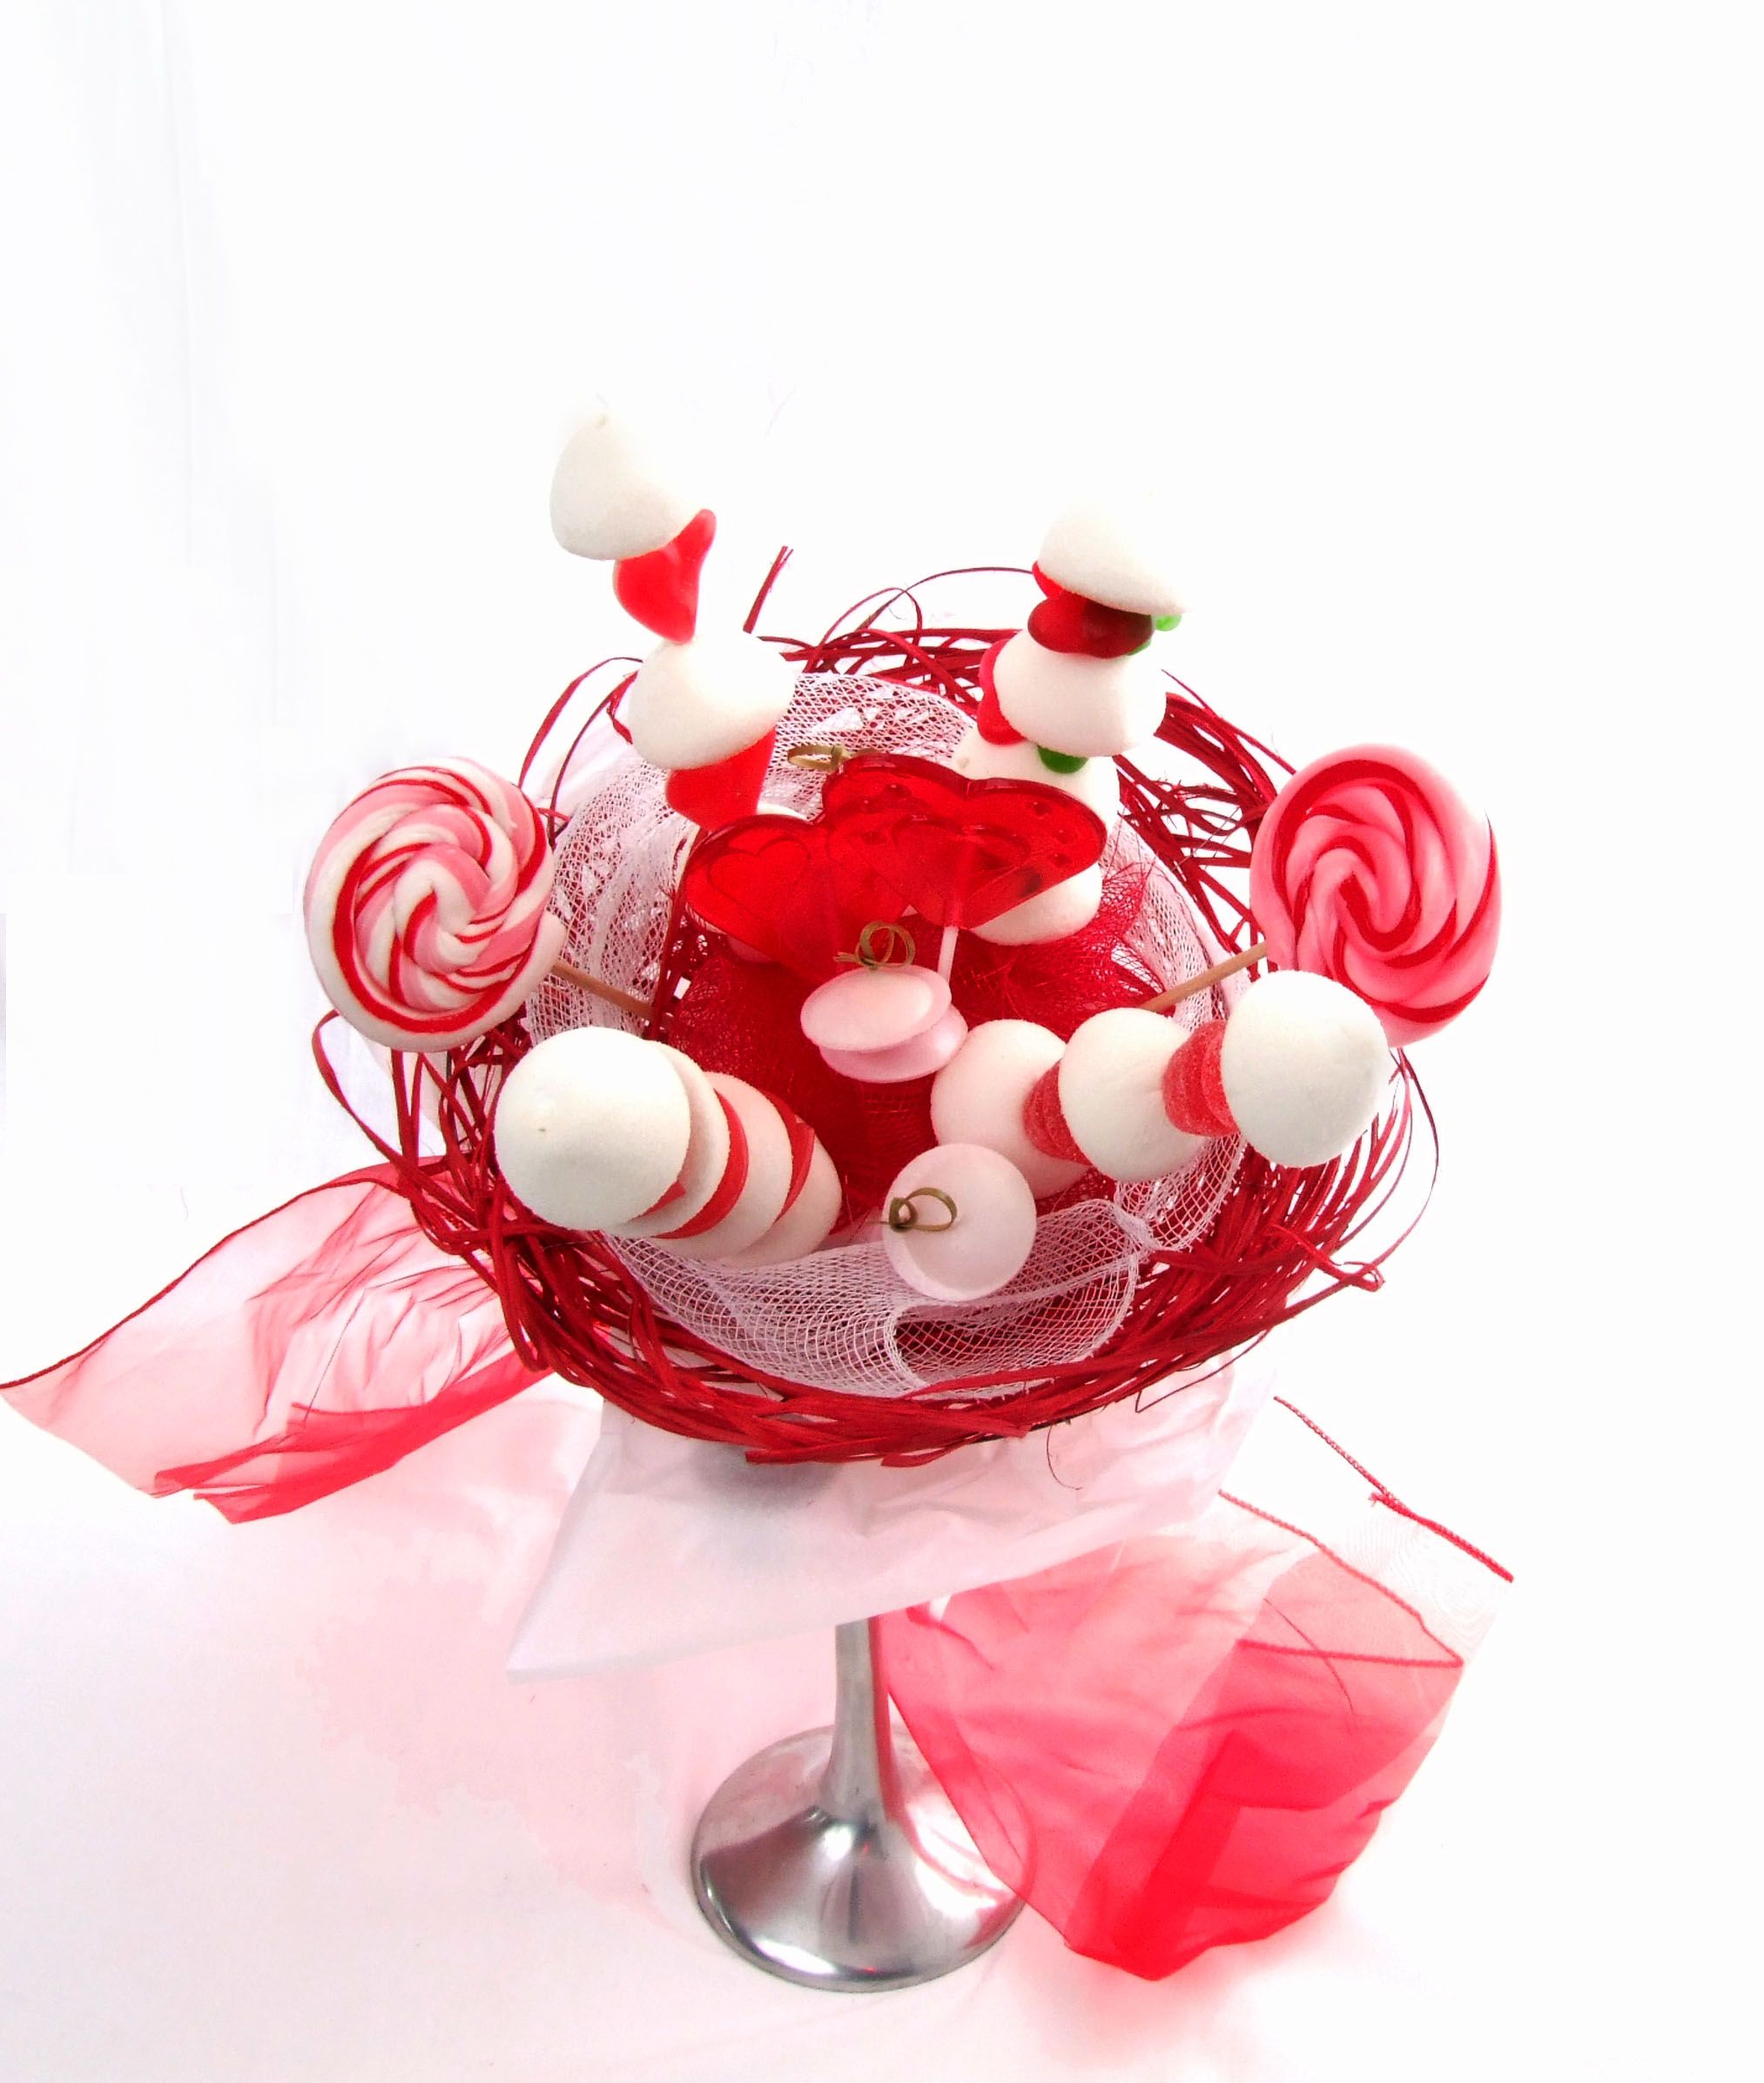 Bouquet Bonbons Je T Aime Sucré Bouquet De Bonbons Ethnic Recipes Panna Cotta